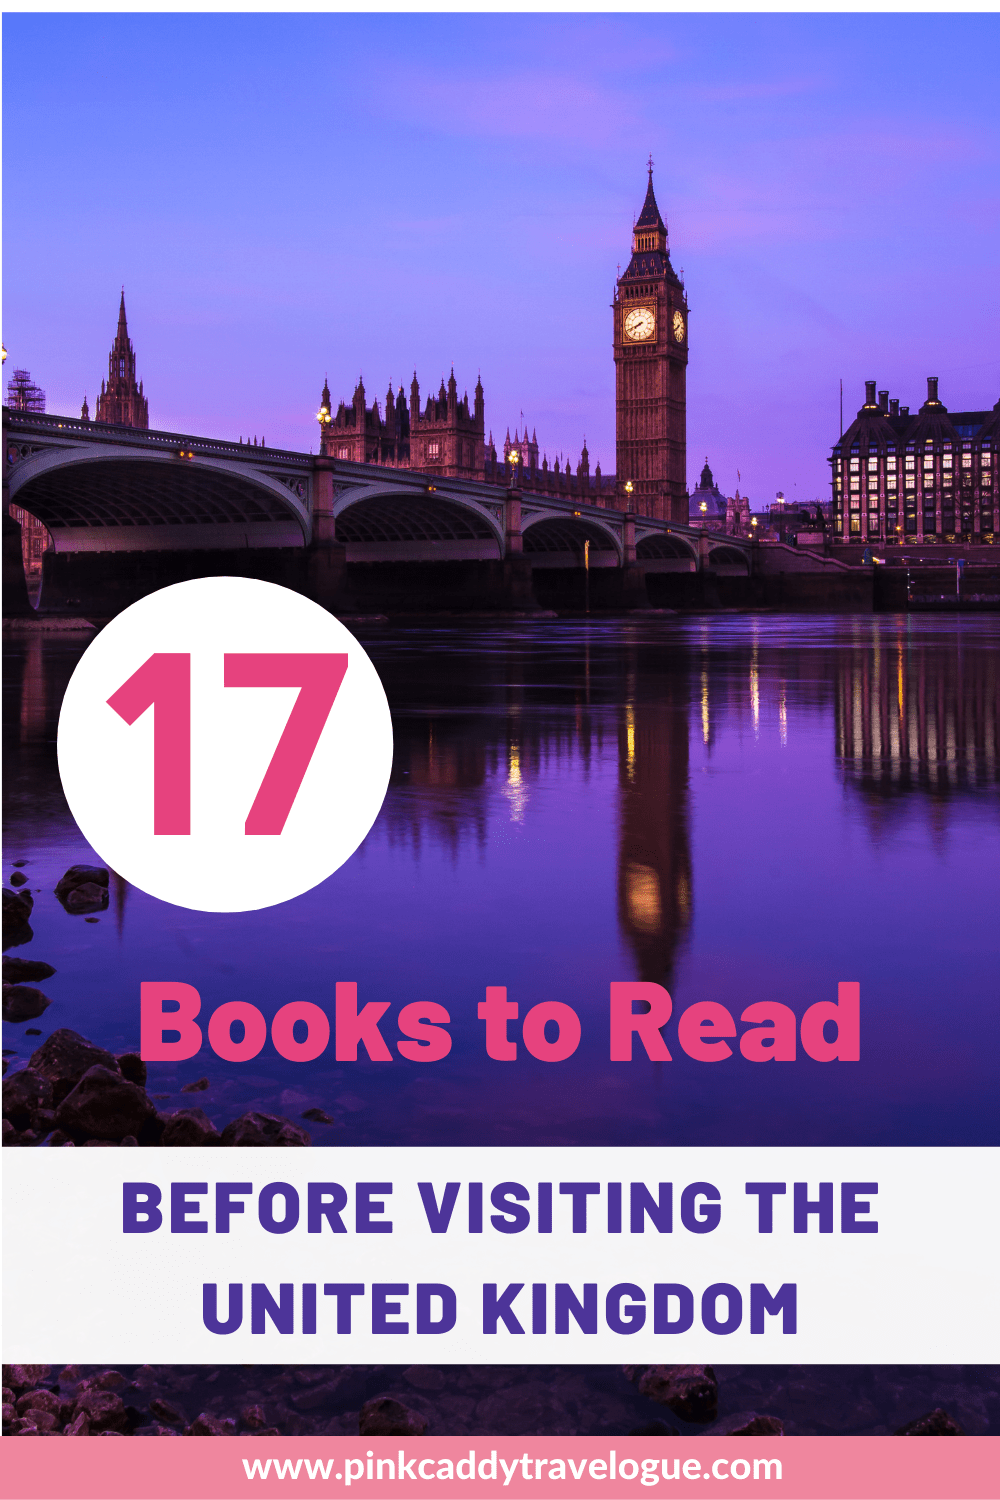 Are you planning a trip to England, Scotland, Wales, or somewhere thereabouts? Here are the best books about the UK you should read before your trip! #england #scotland #wales #janeausten #charlesdickens #booklovers